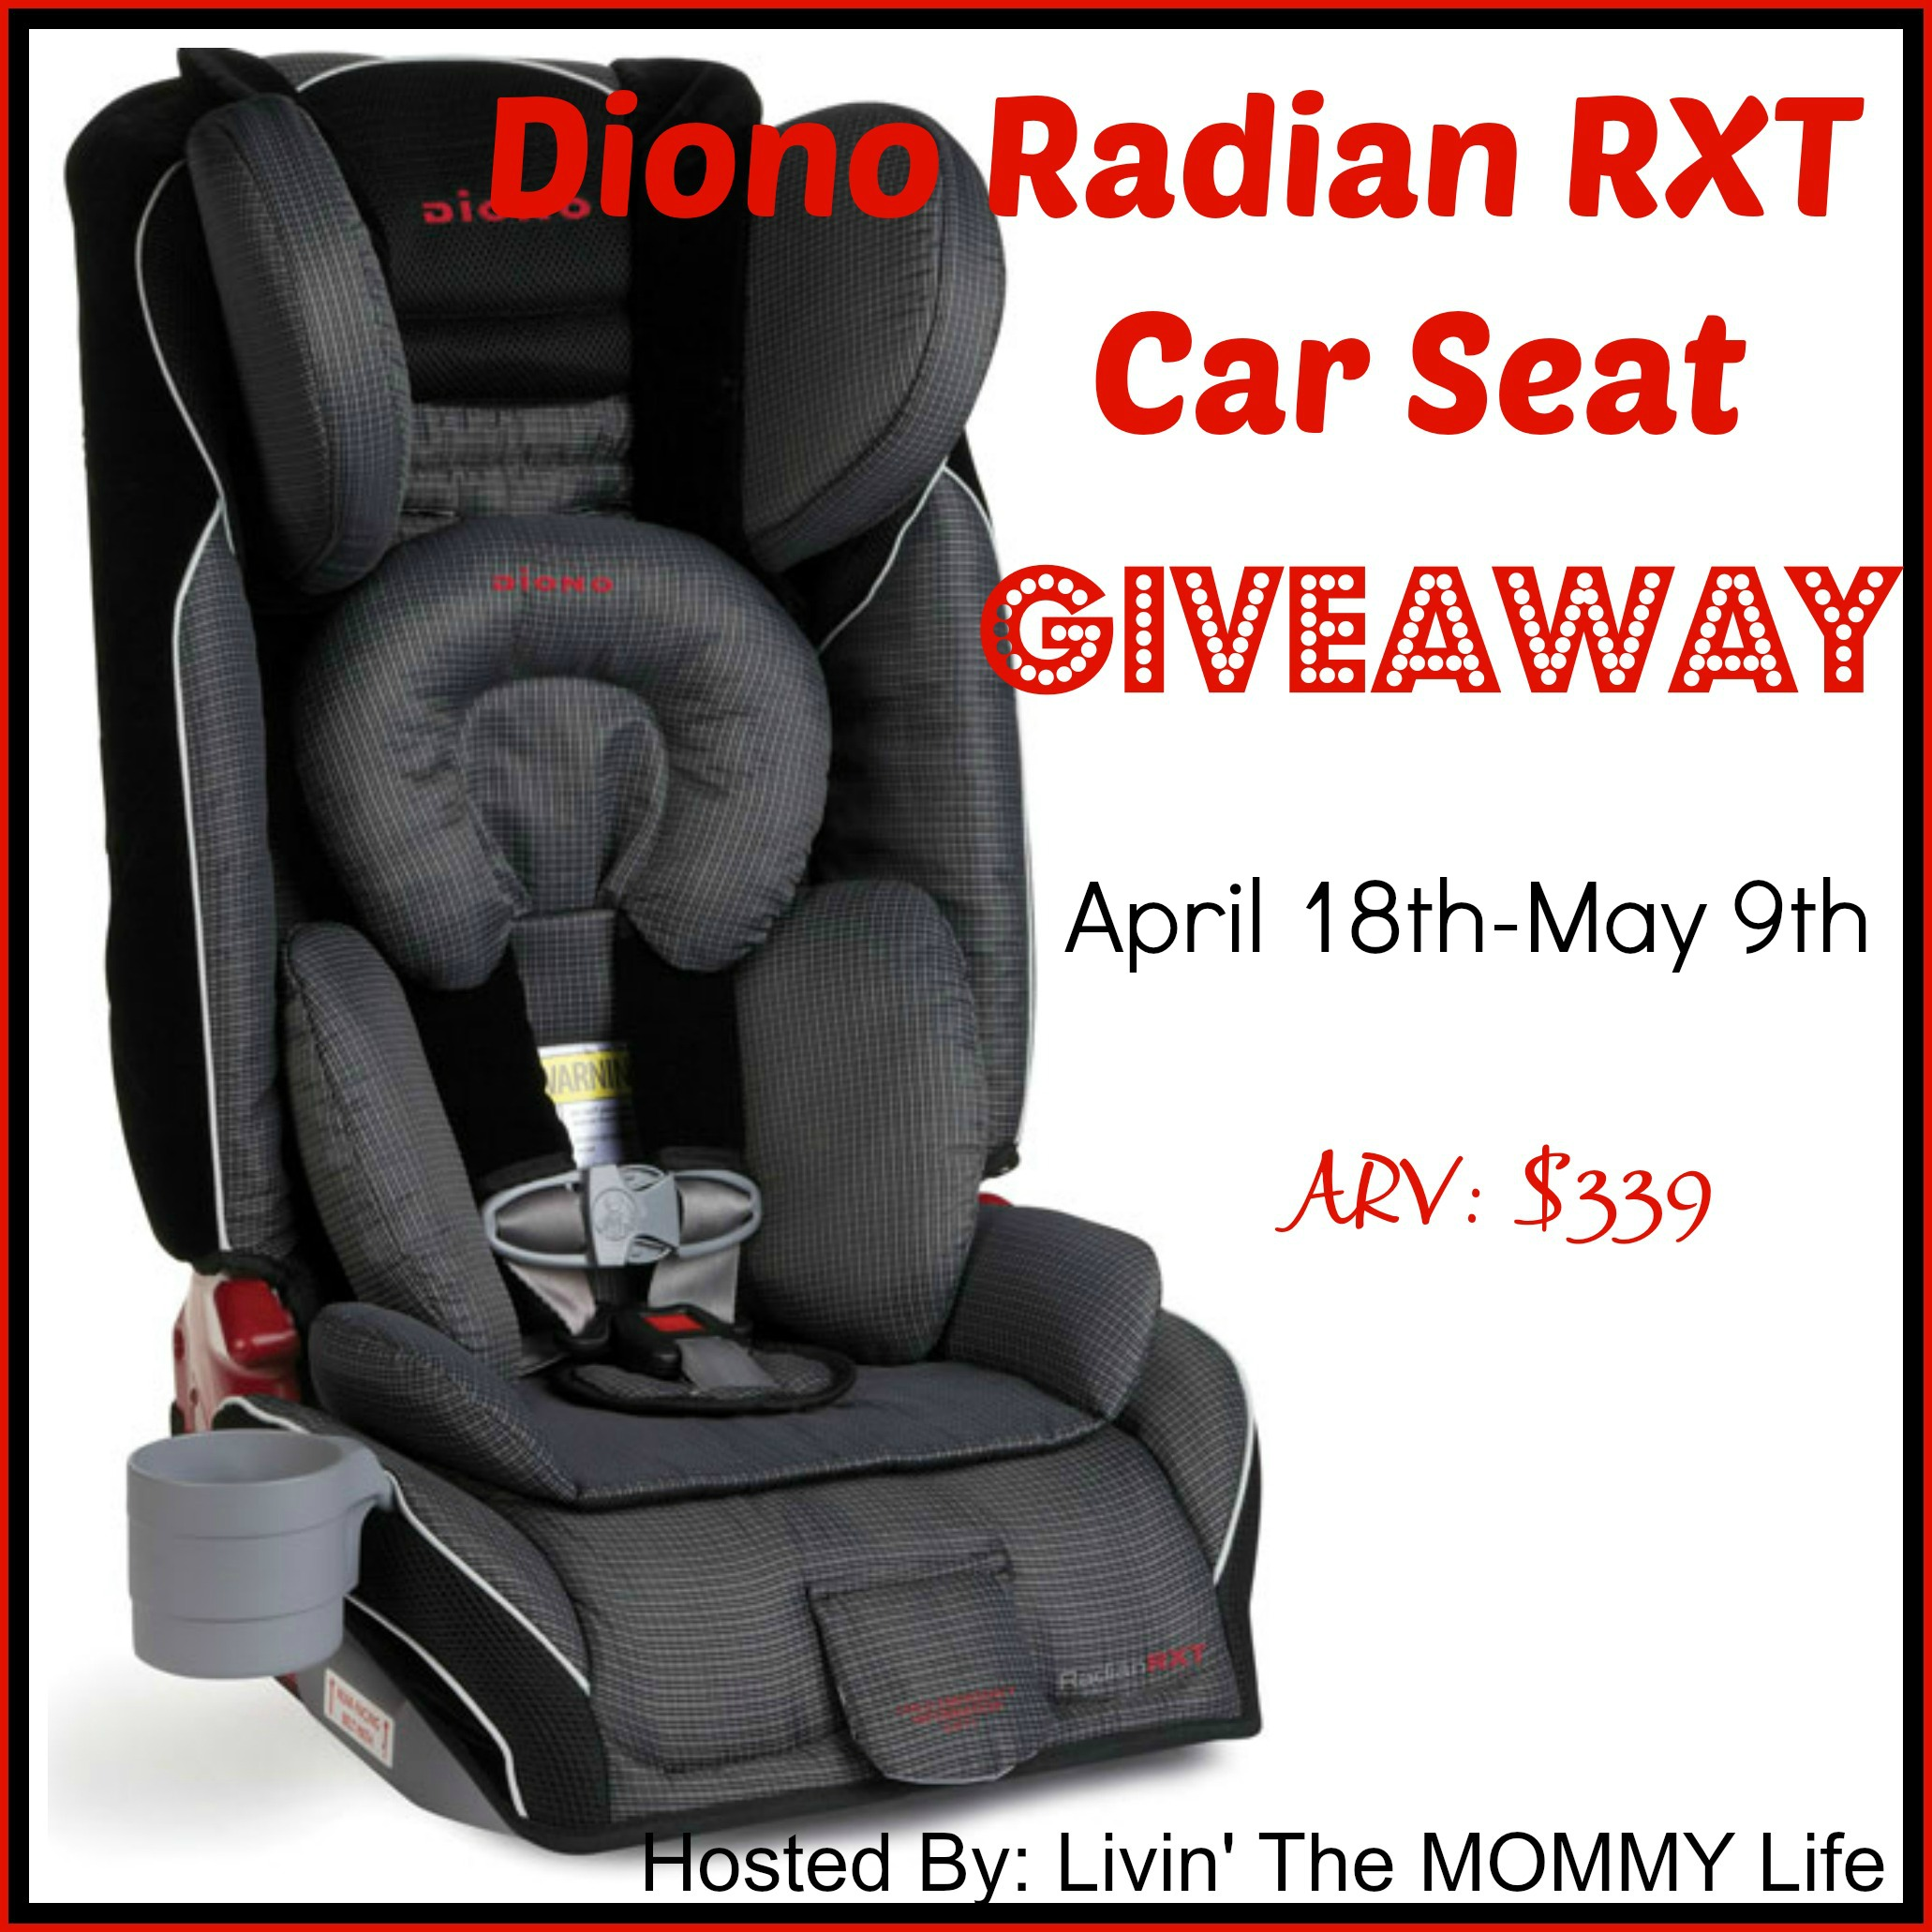 Diono Radian RXT Car Seat Giveaway Family Review Guide